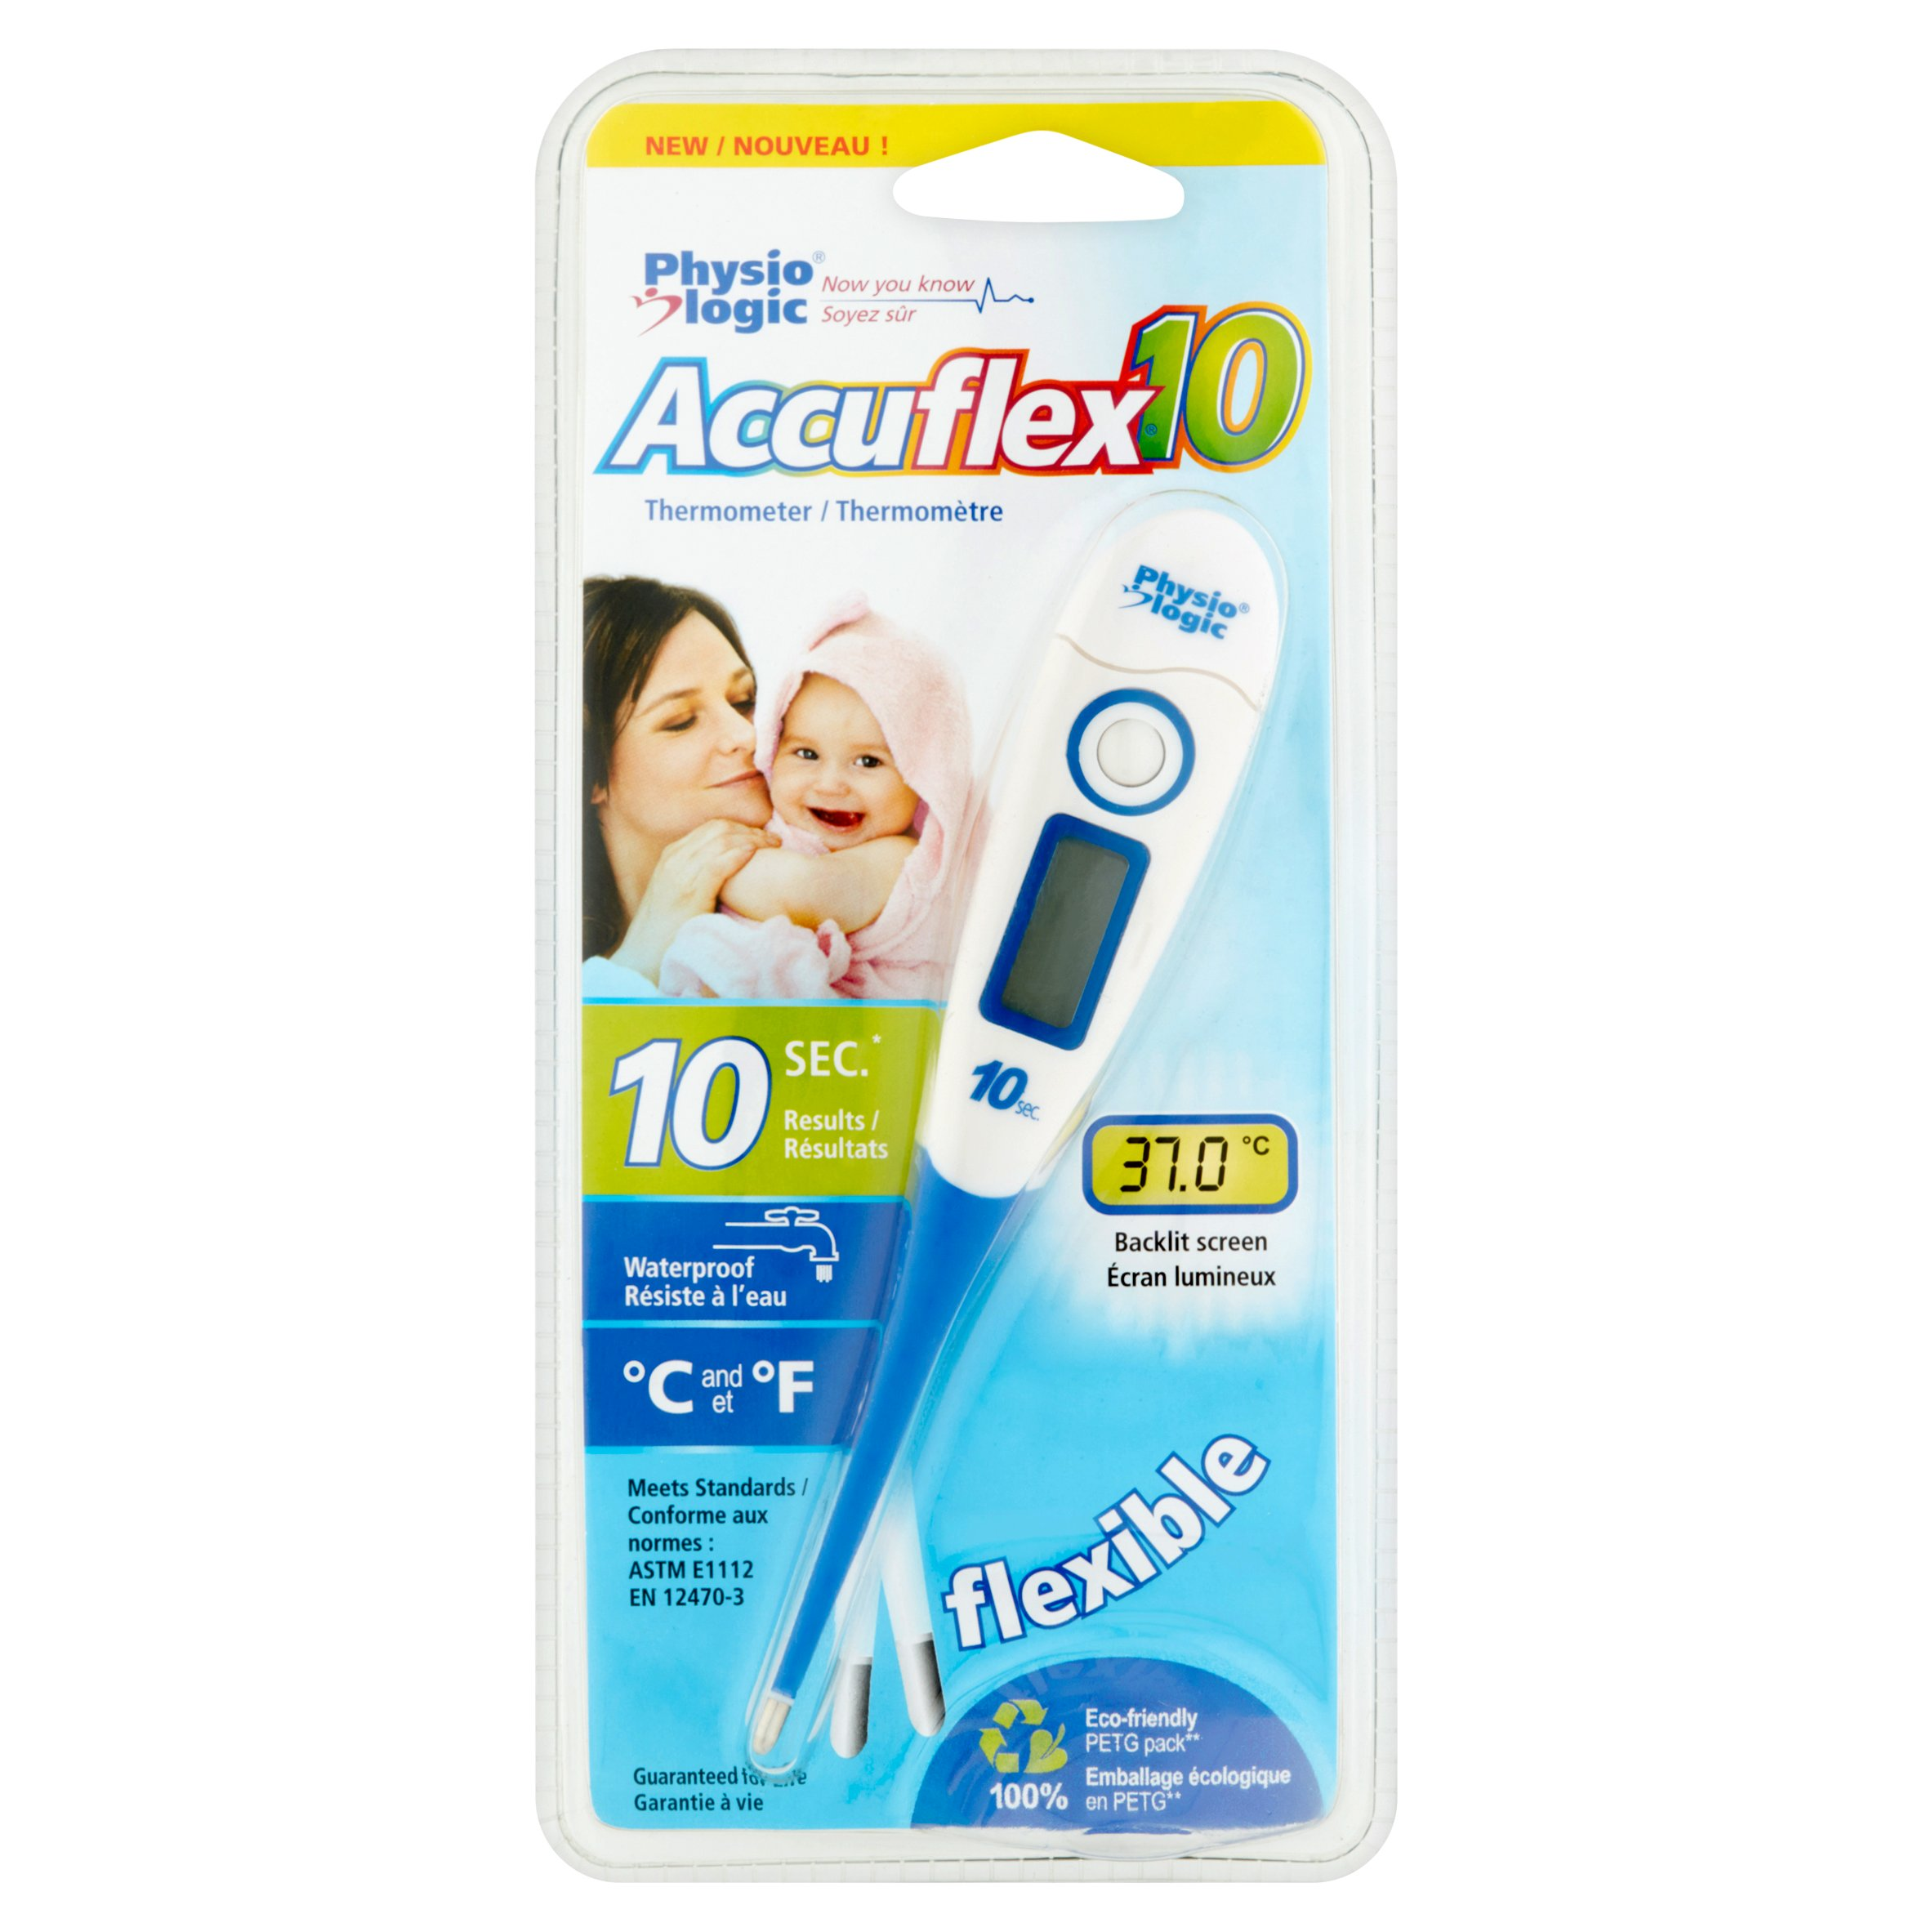 Physiologic Accuflex Thermometer